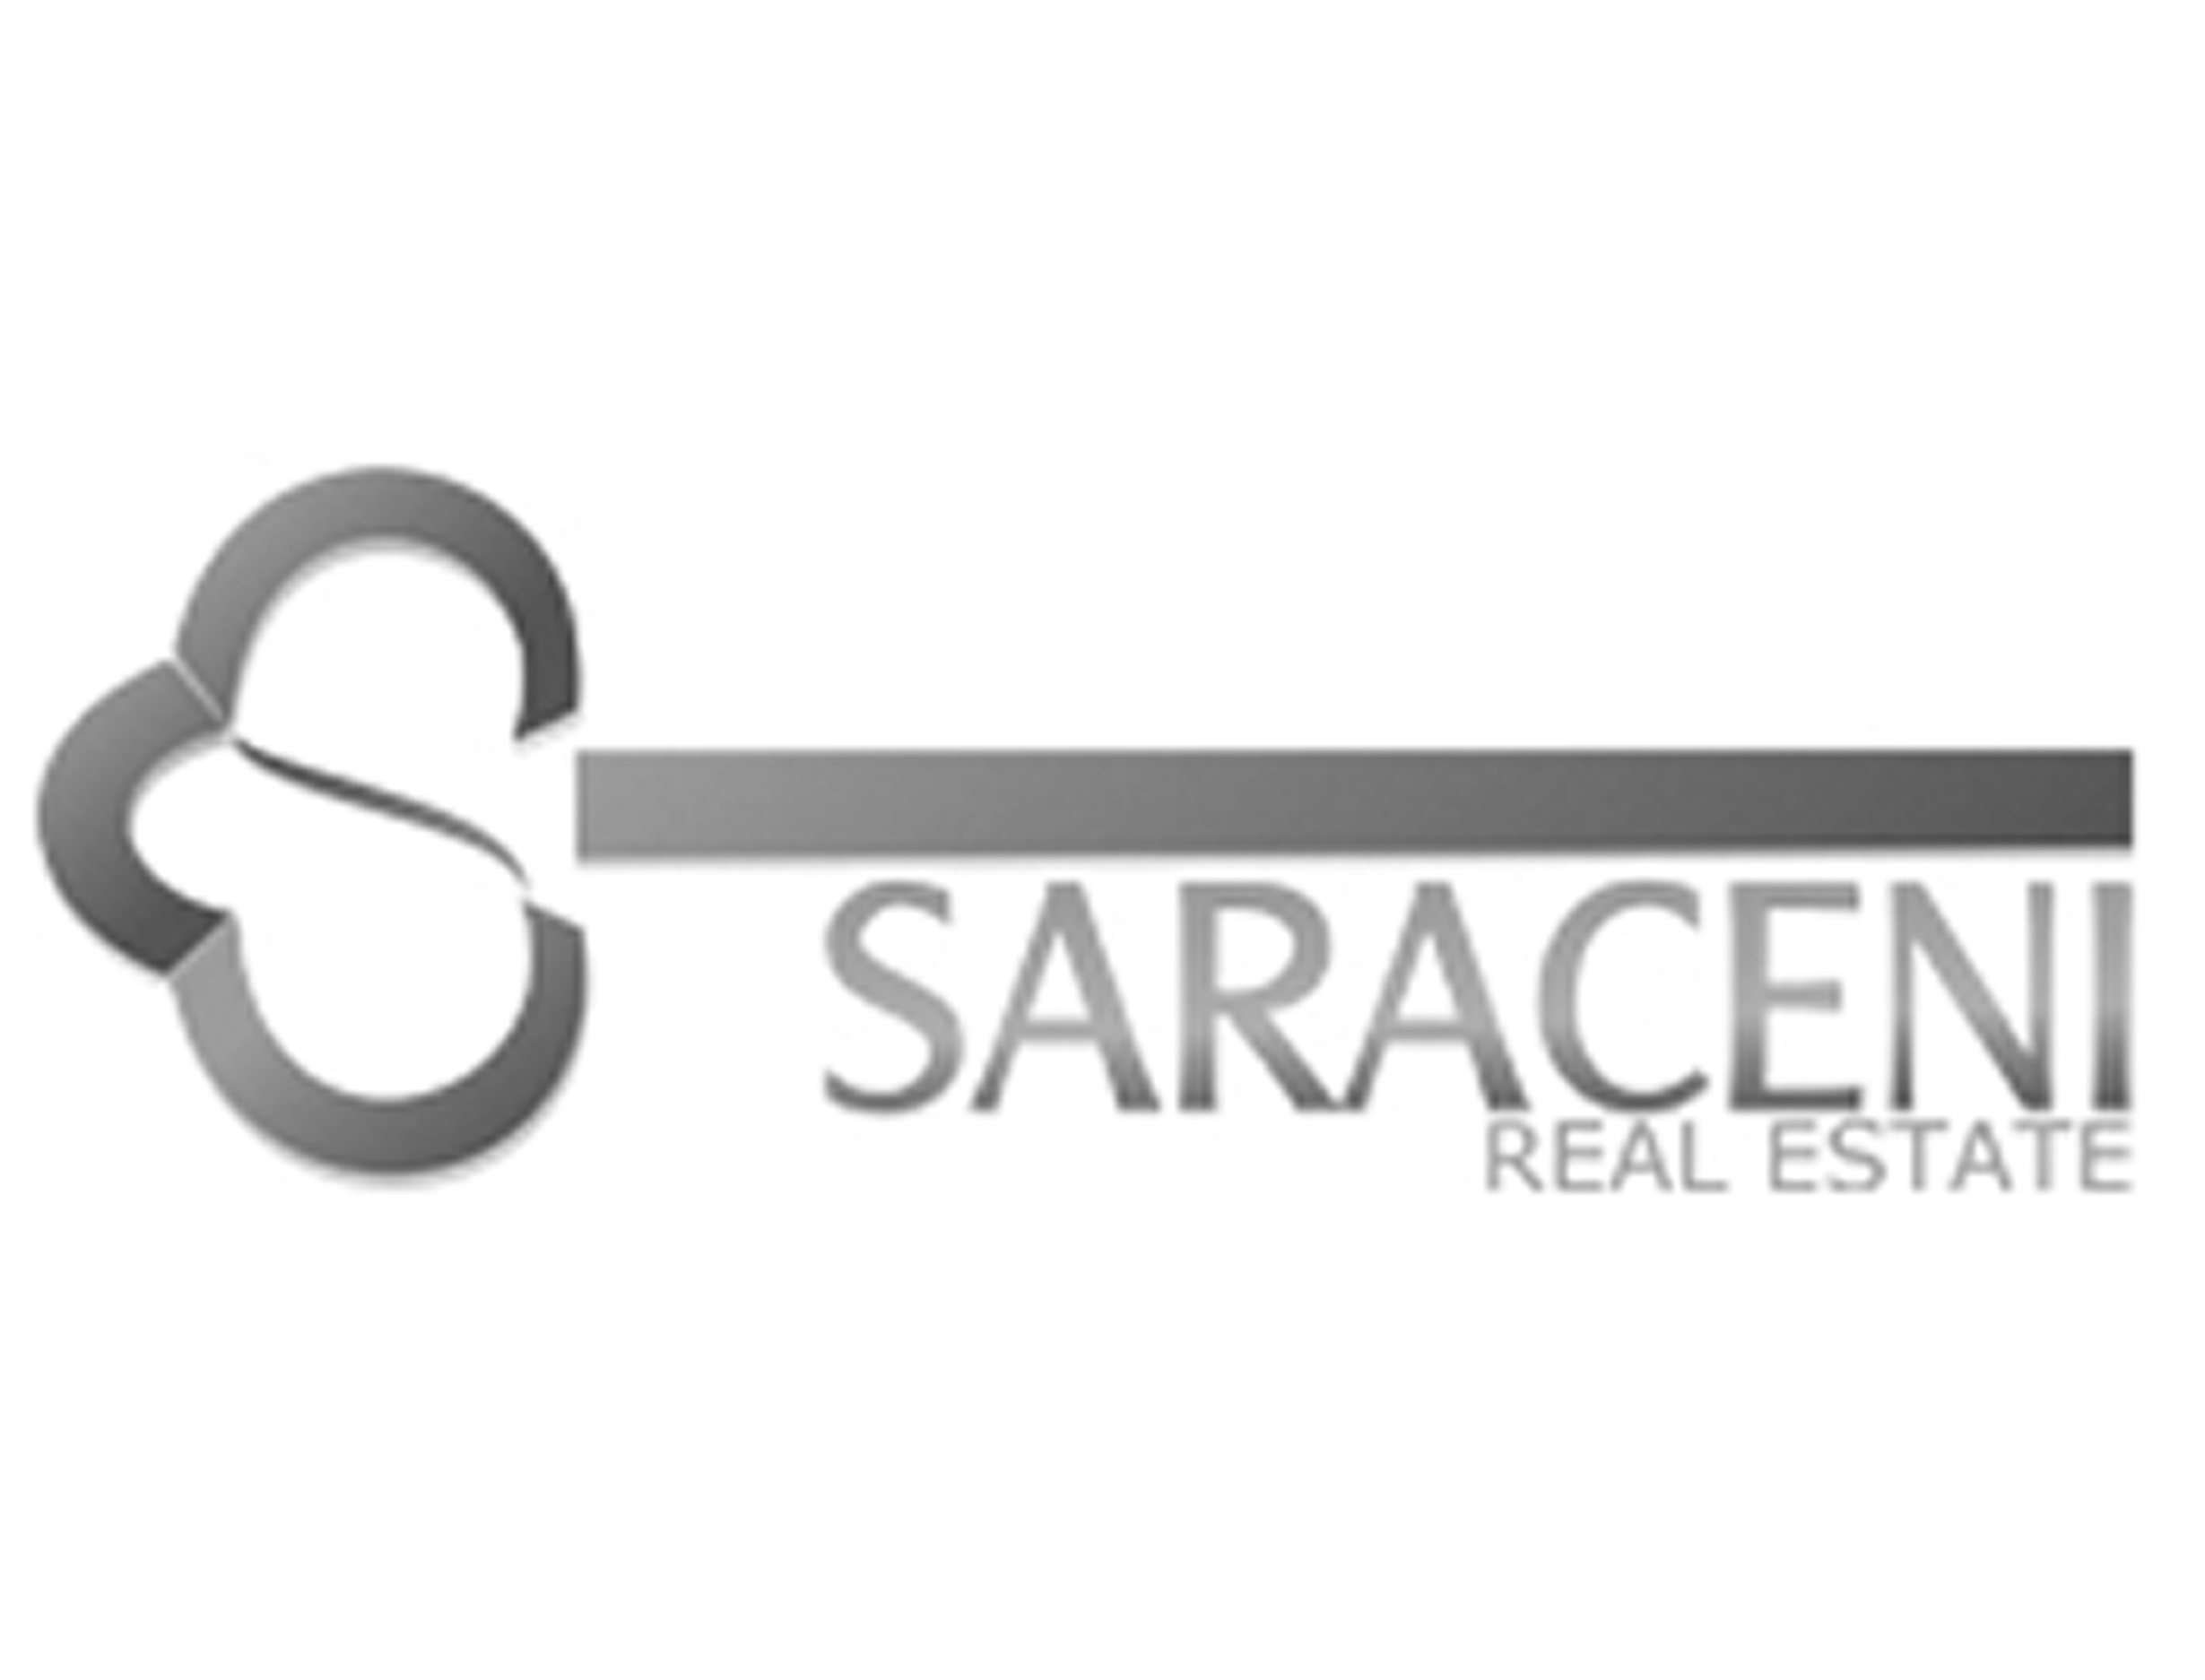 Saraceni Real Estate